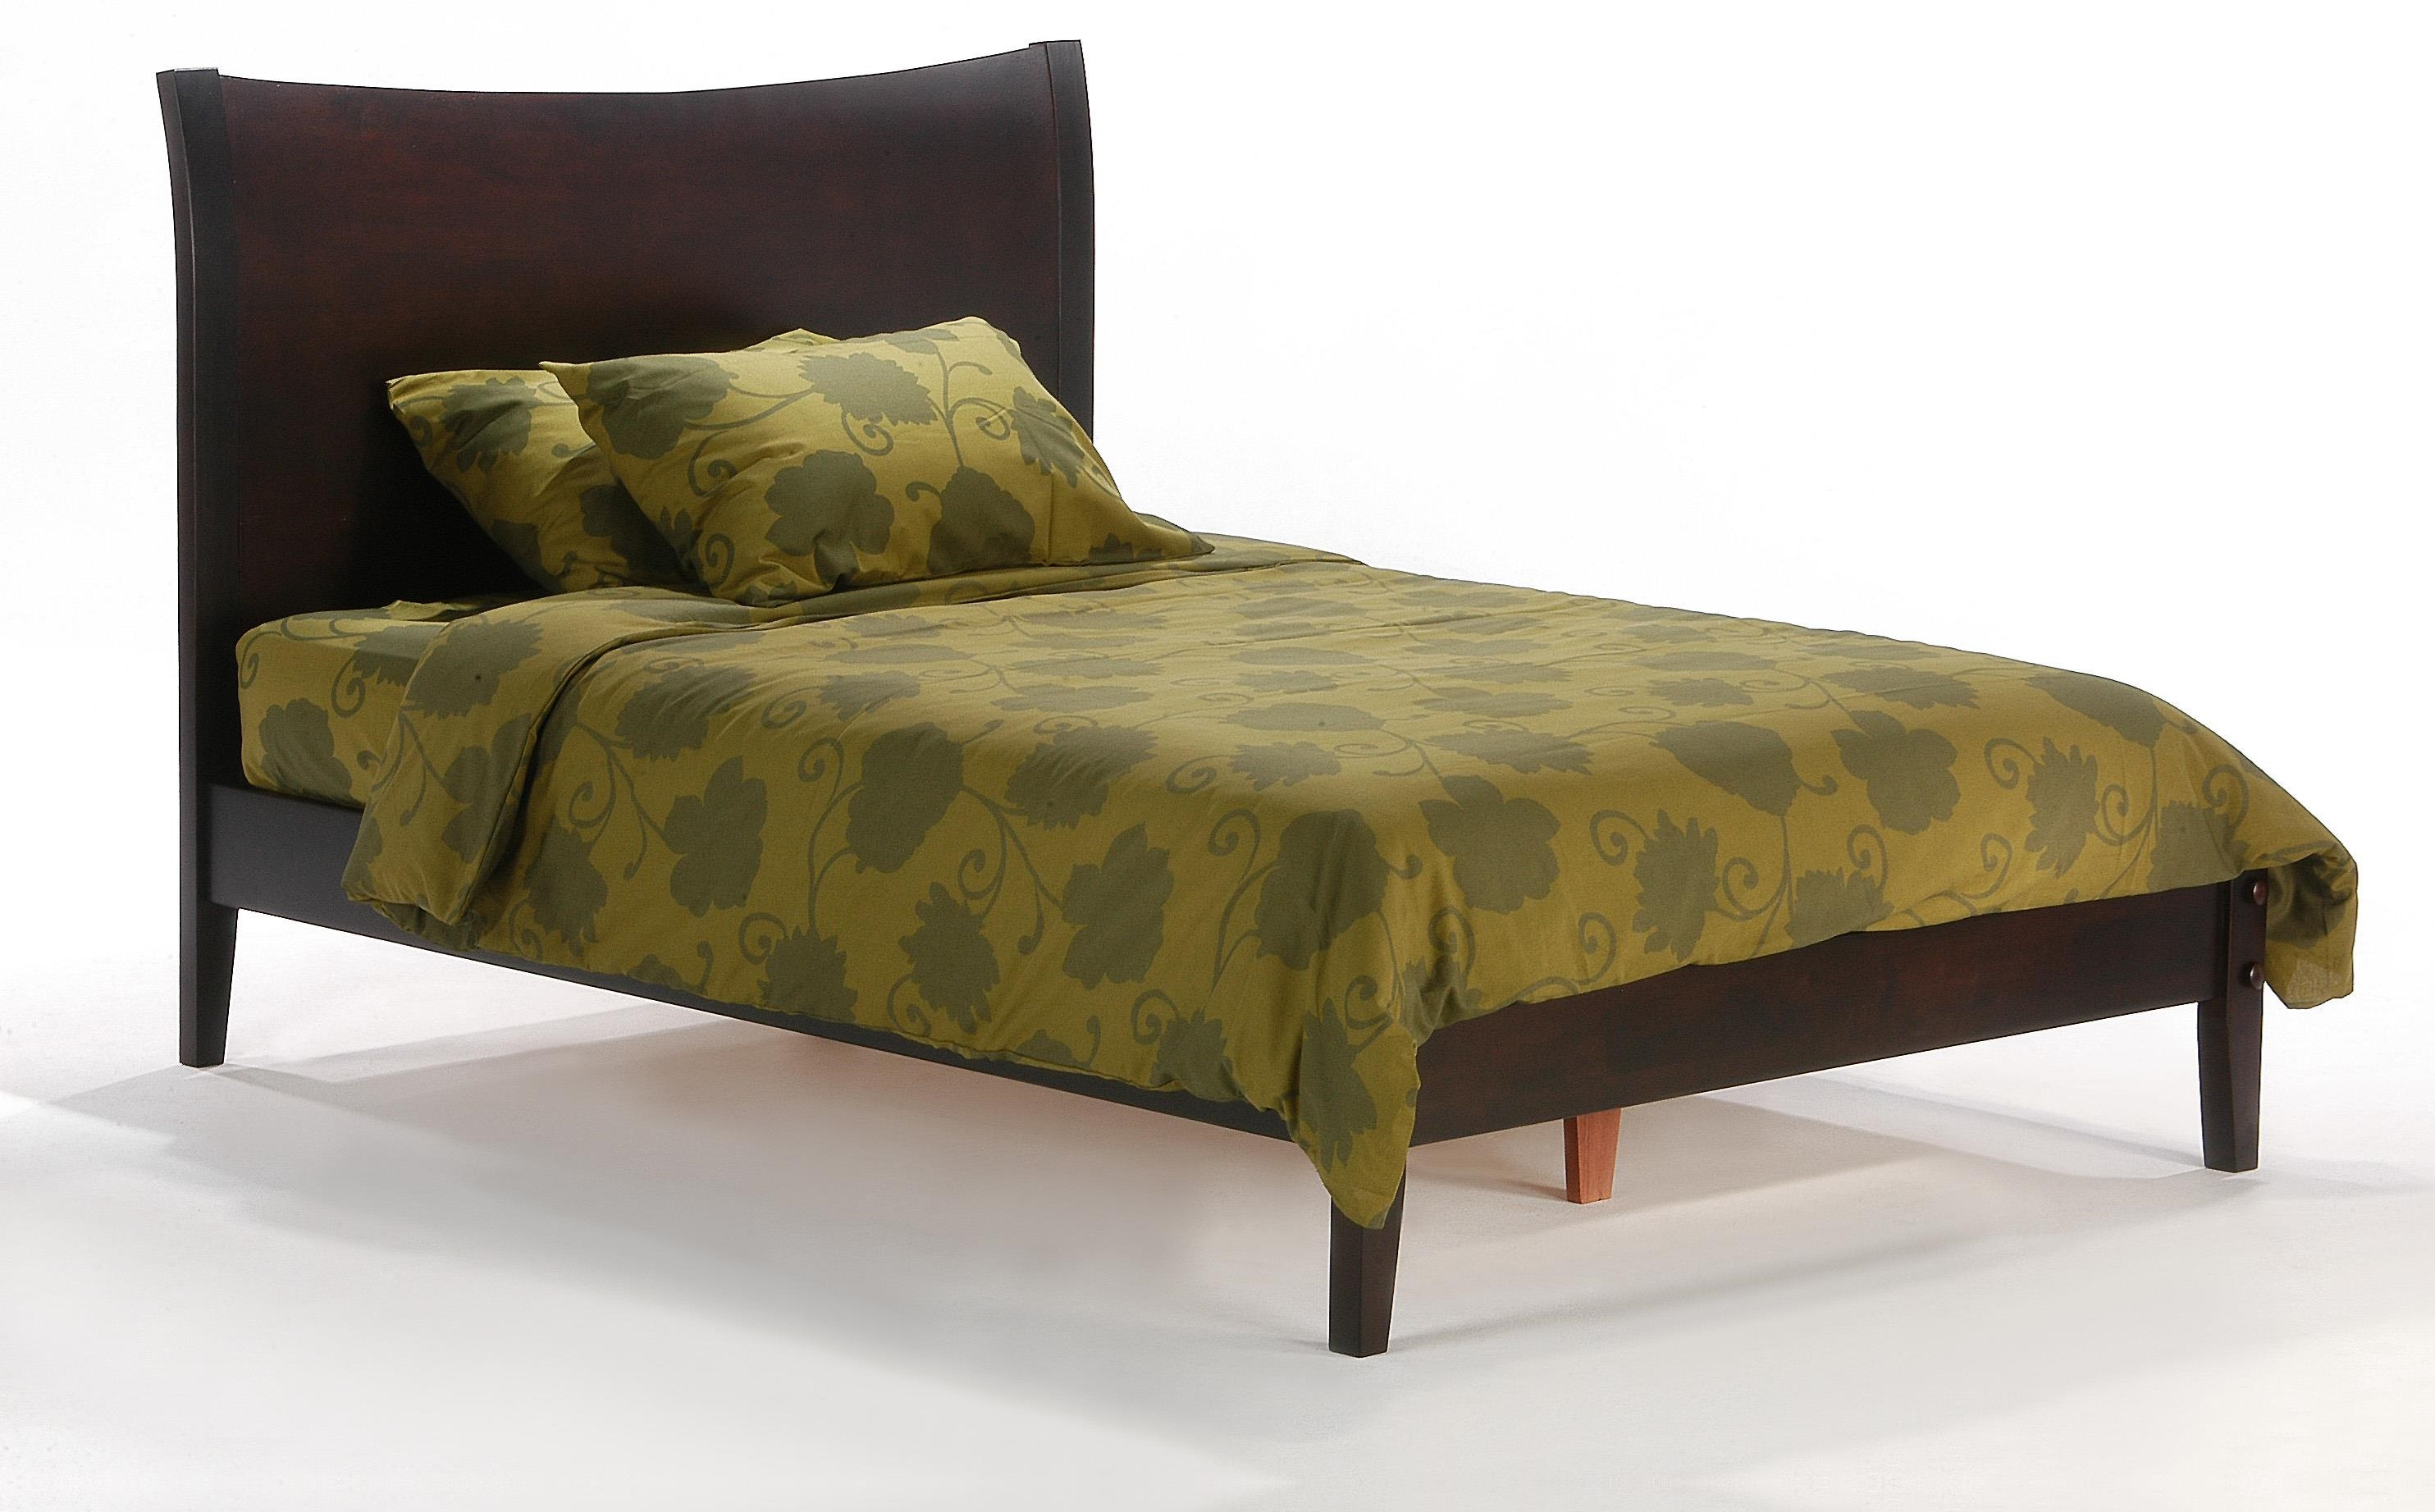 Blackpepper - Chocolate Full Bed by Pacific Manufacturing at SlumberWorld